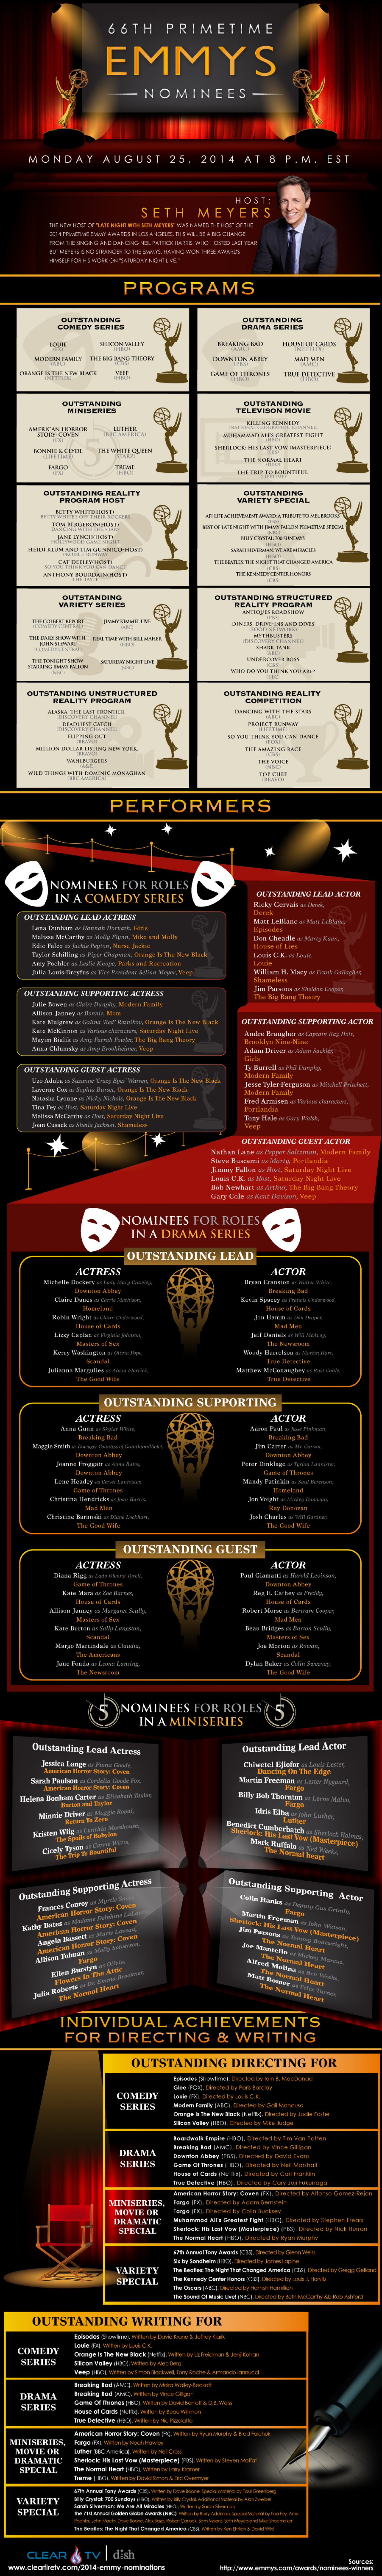 66th Annual Emmy Nominees Infographic